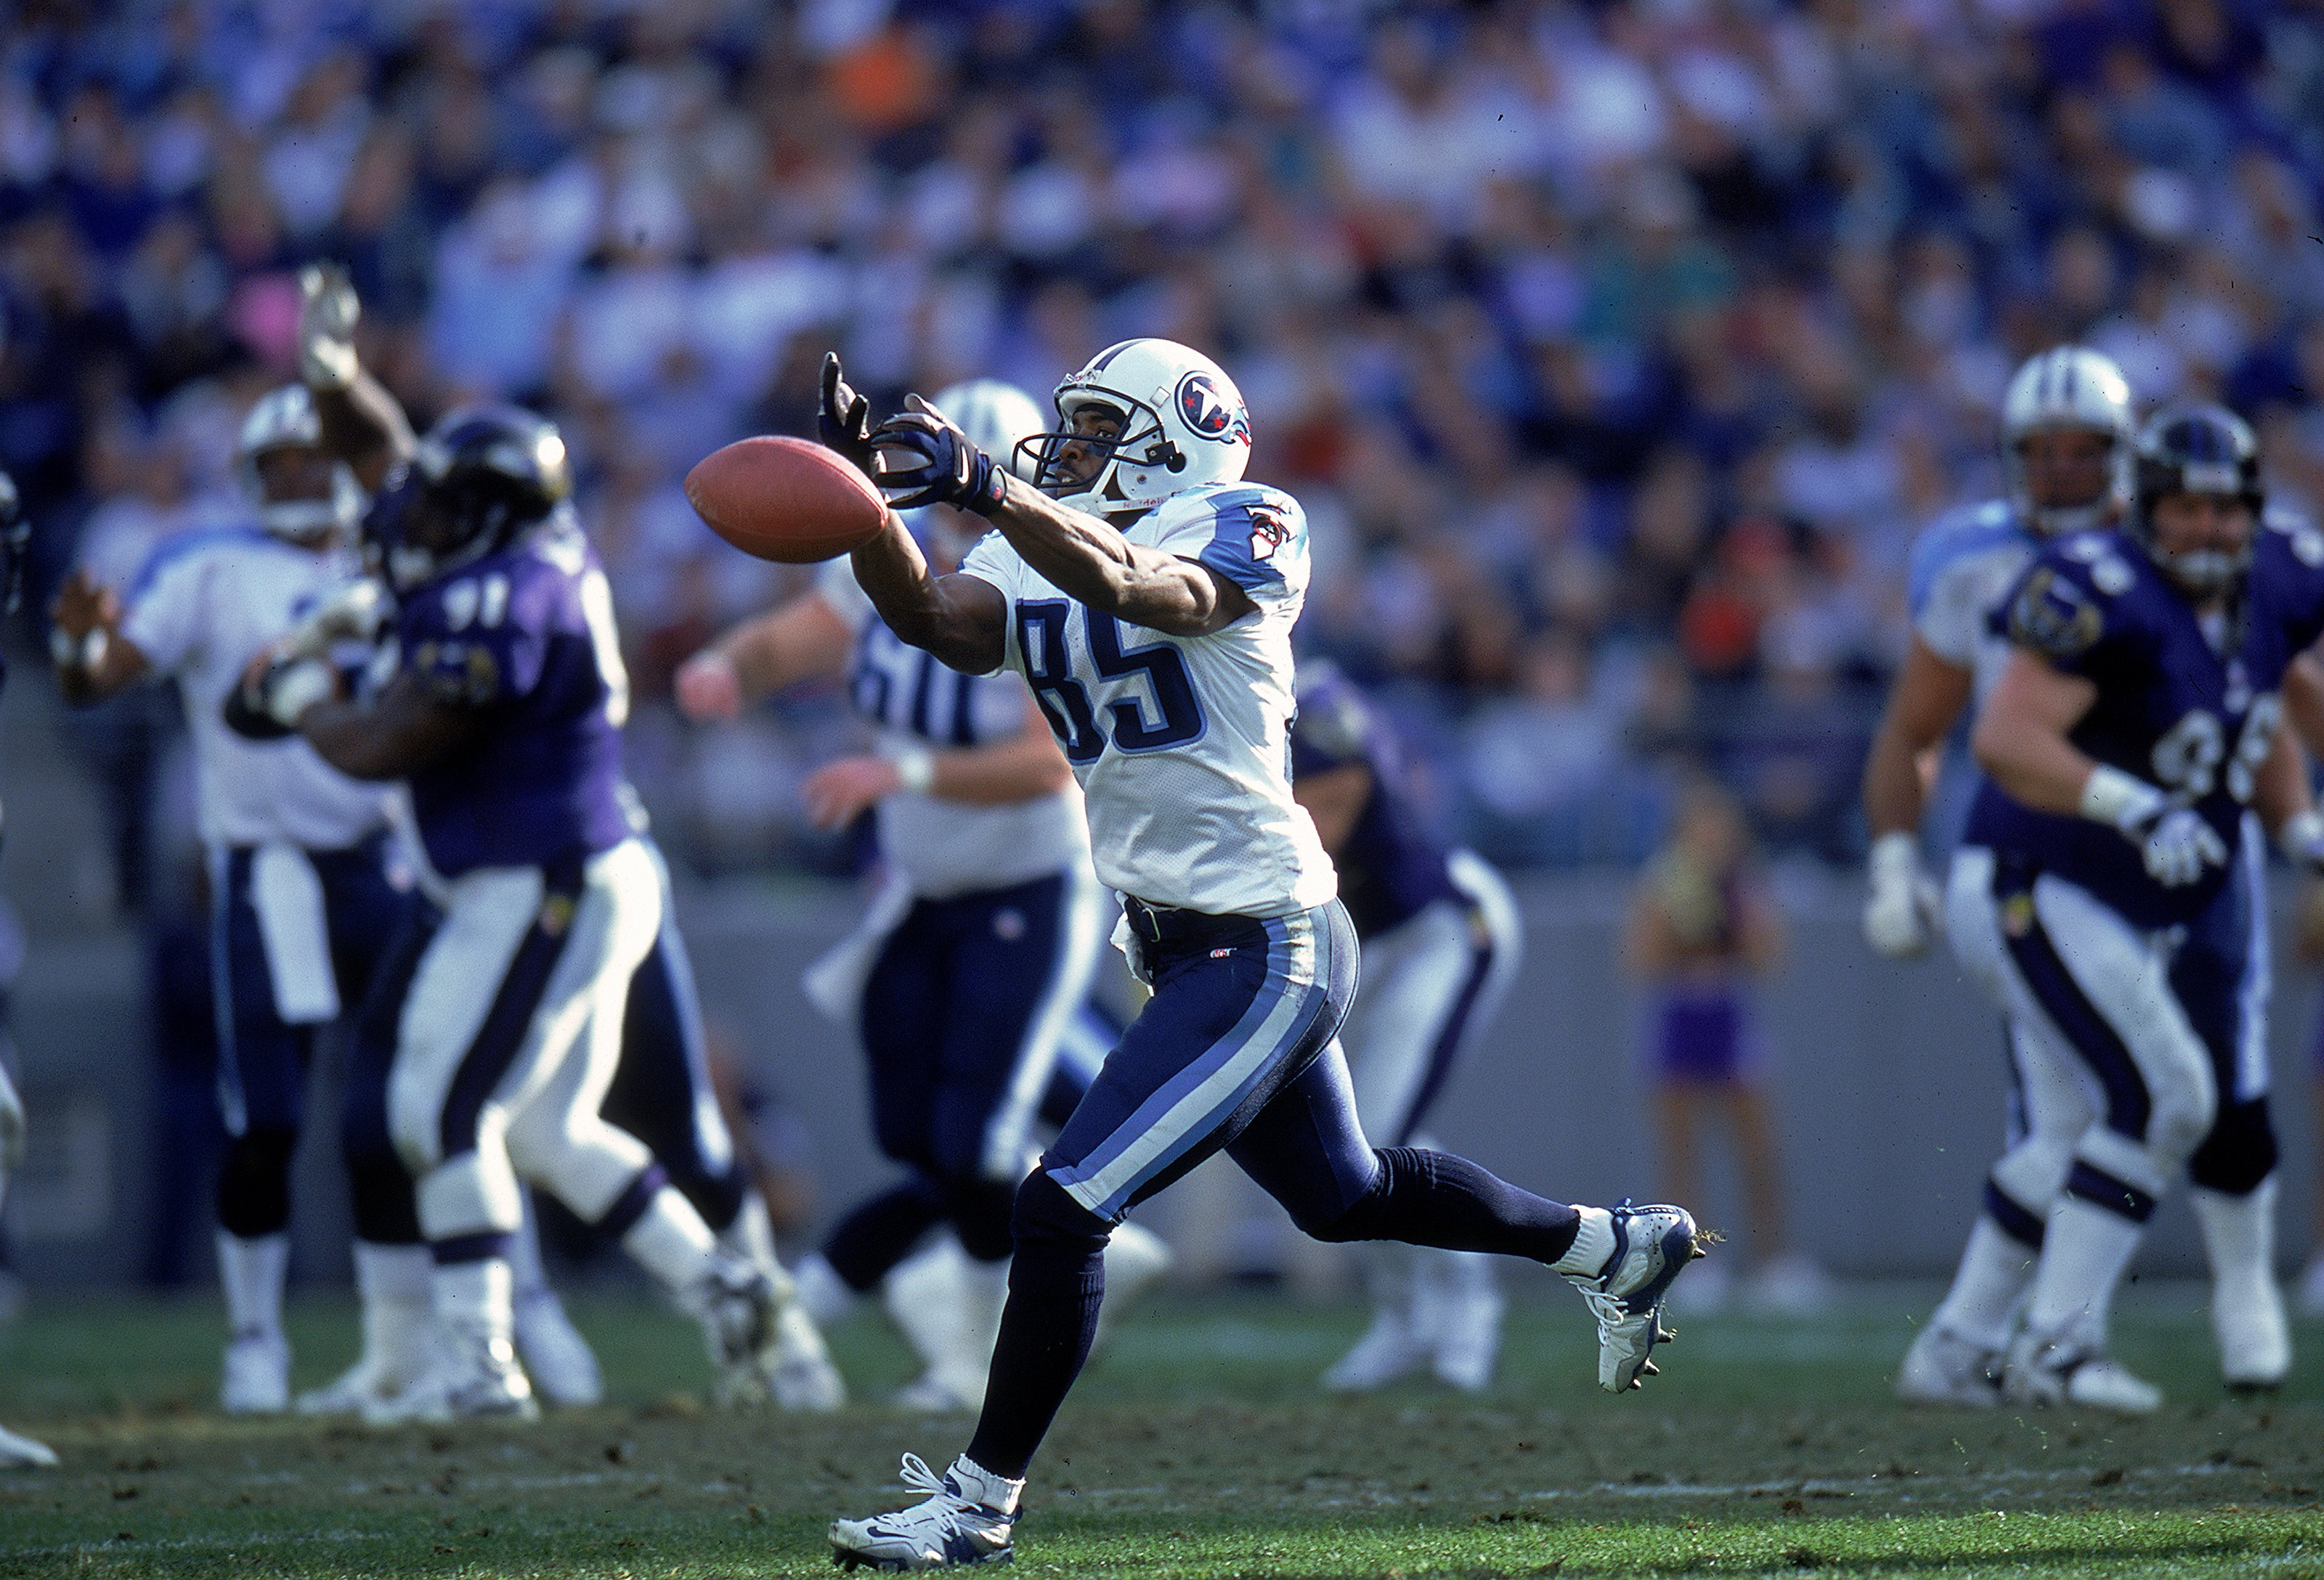 5 Dec 1999: Derrick Mason #85 of the Tennessee Titans stretches to catch the ball but misses during a game against the Baltimore Ravens at the PSI Net Stadium in Baltimore, Maryland. The Ravens defeated the Titans 41-14.